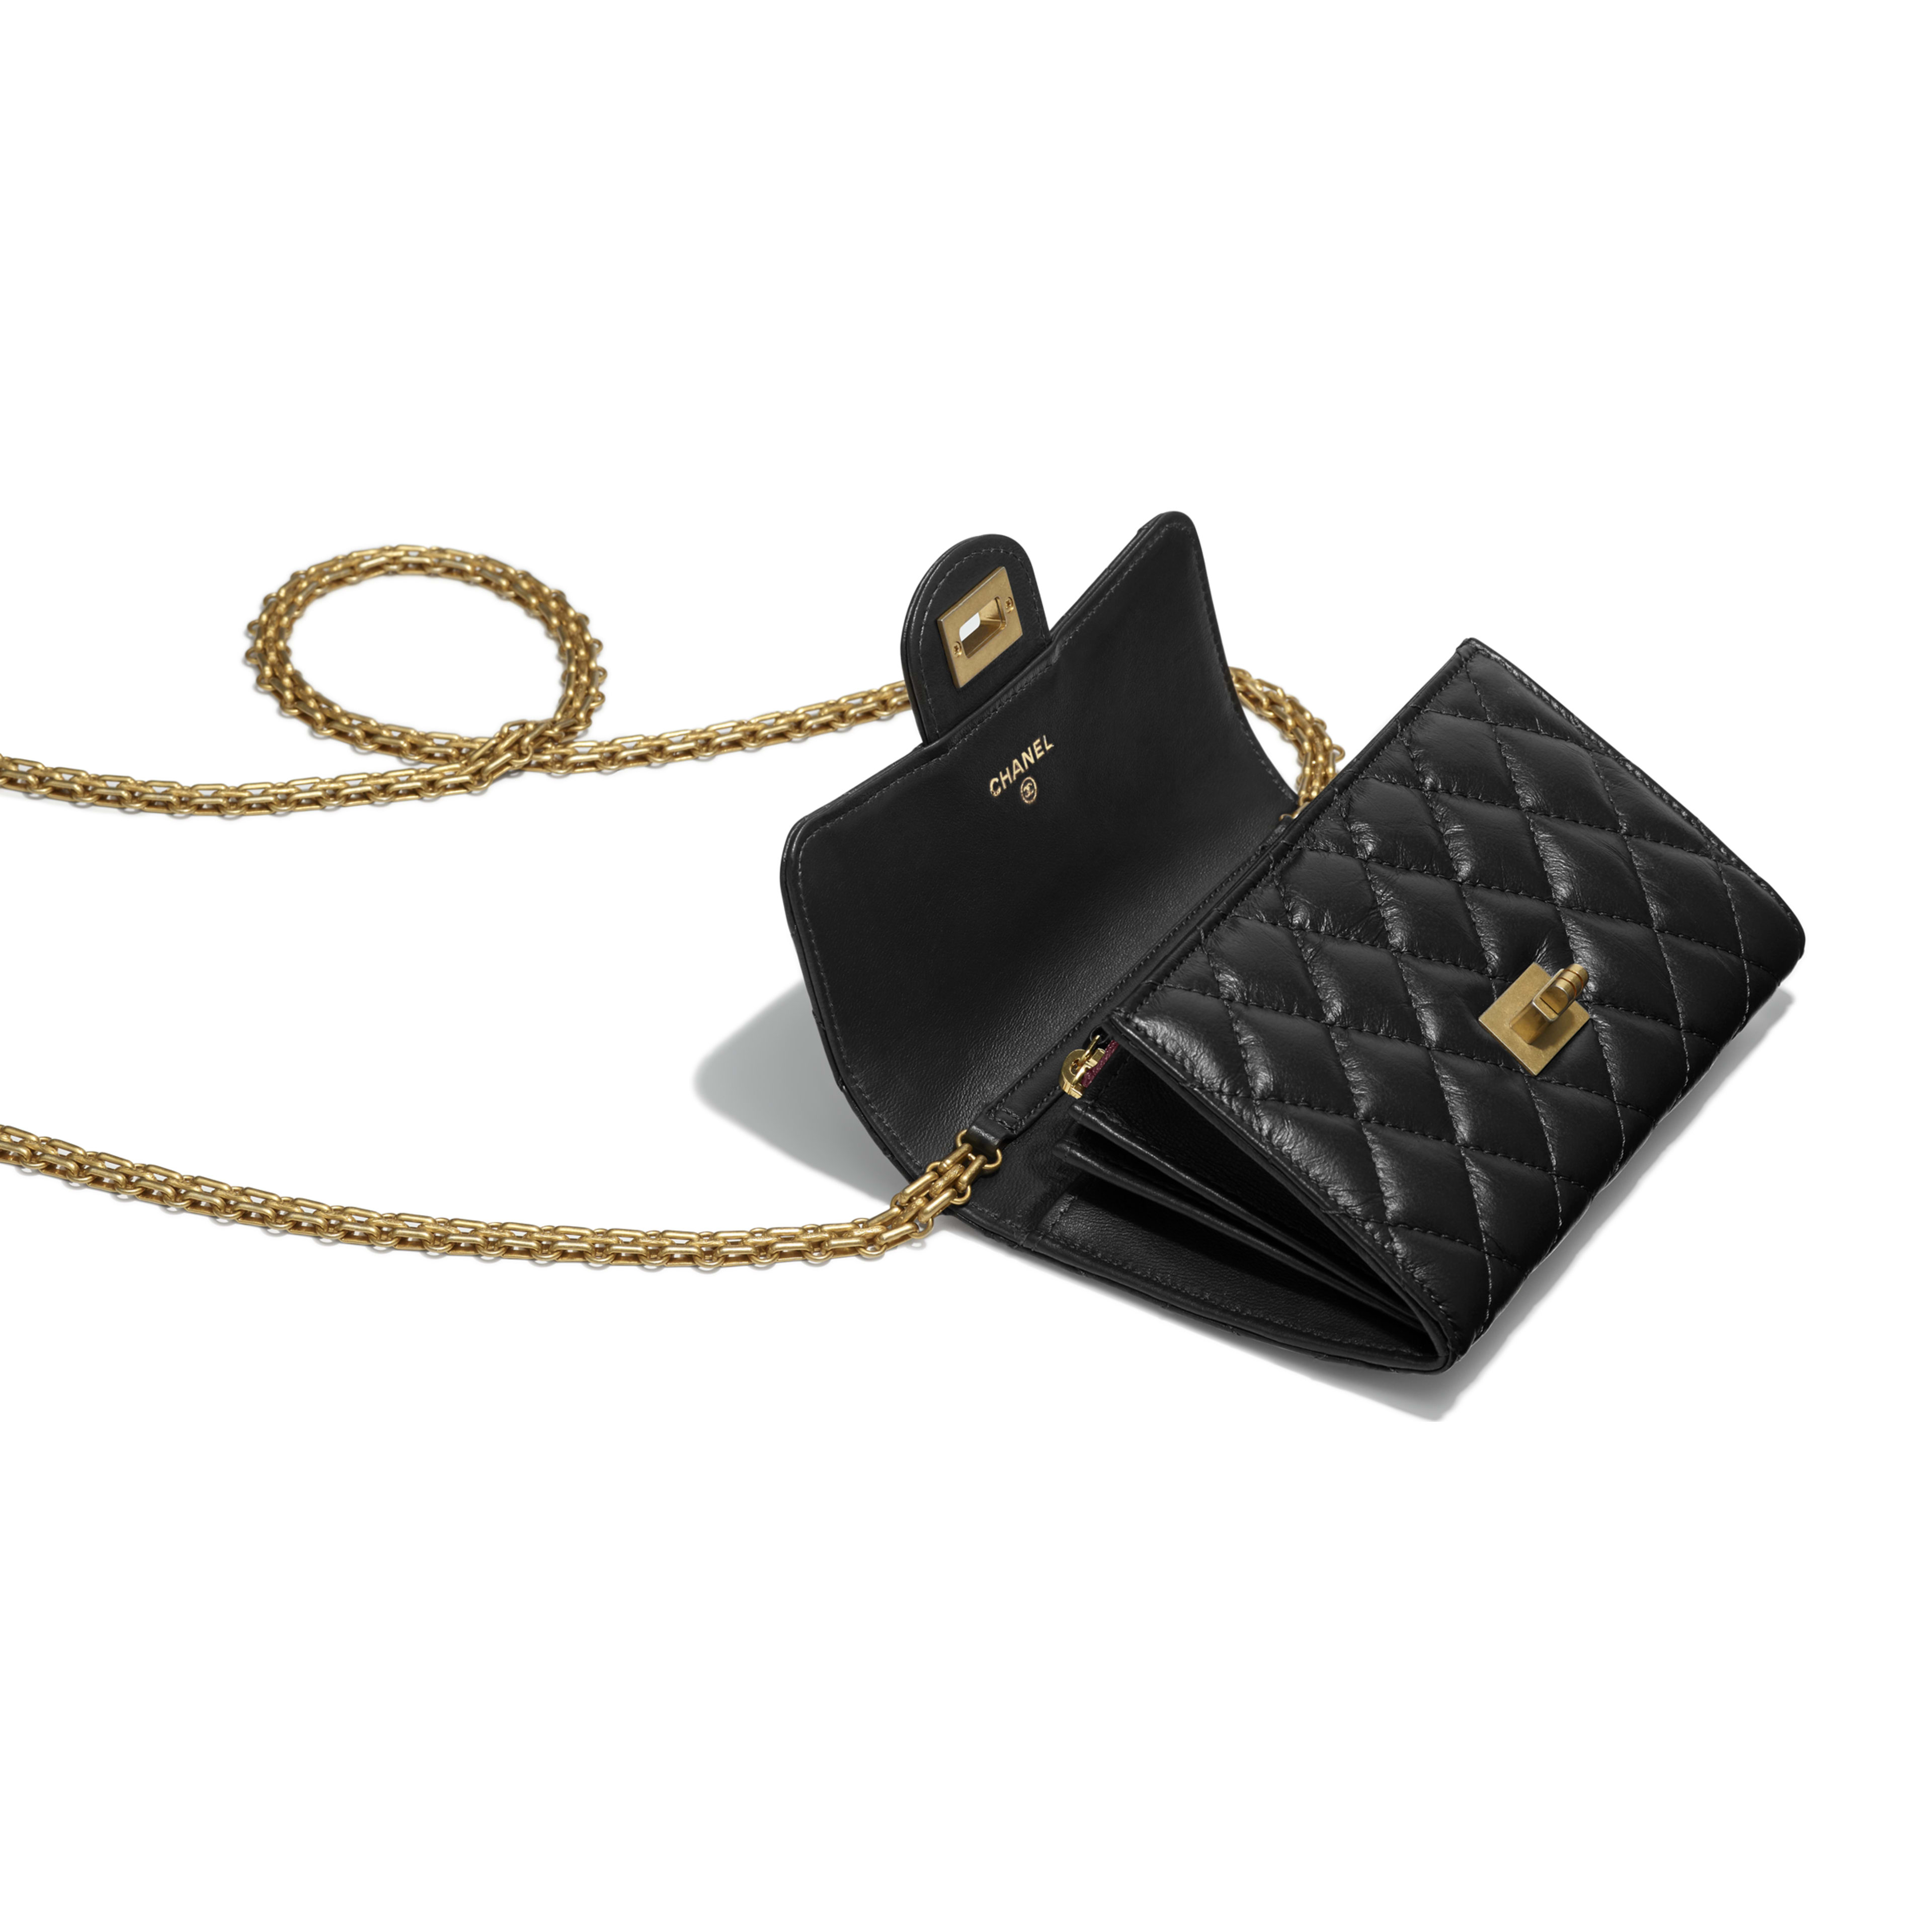 2.55 Clutch with Chain - Black - Aged Calfskin & Gold-Tone Metal - Other view - see full sized version